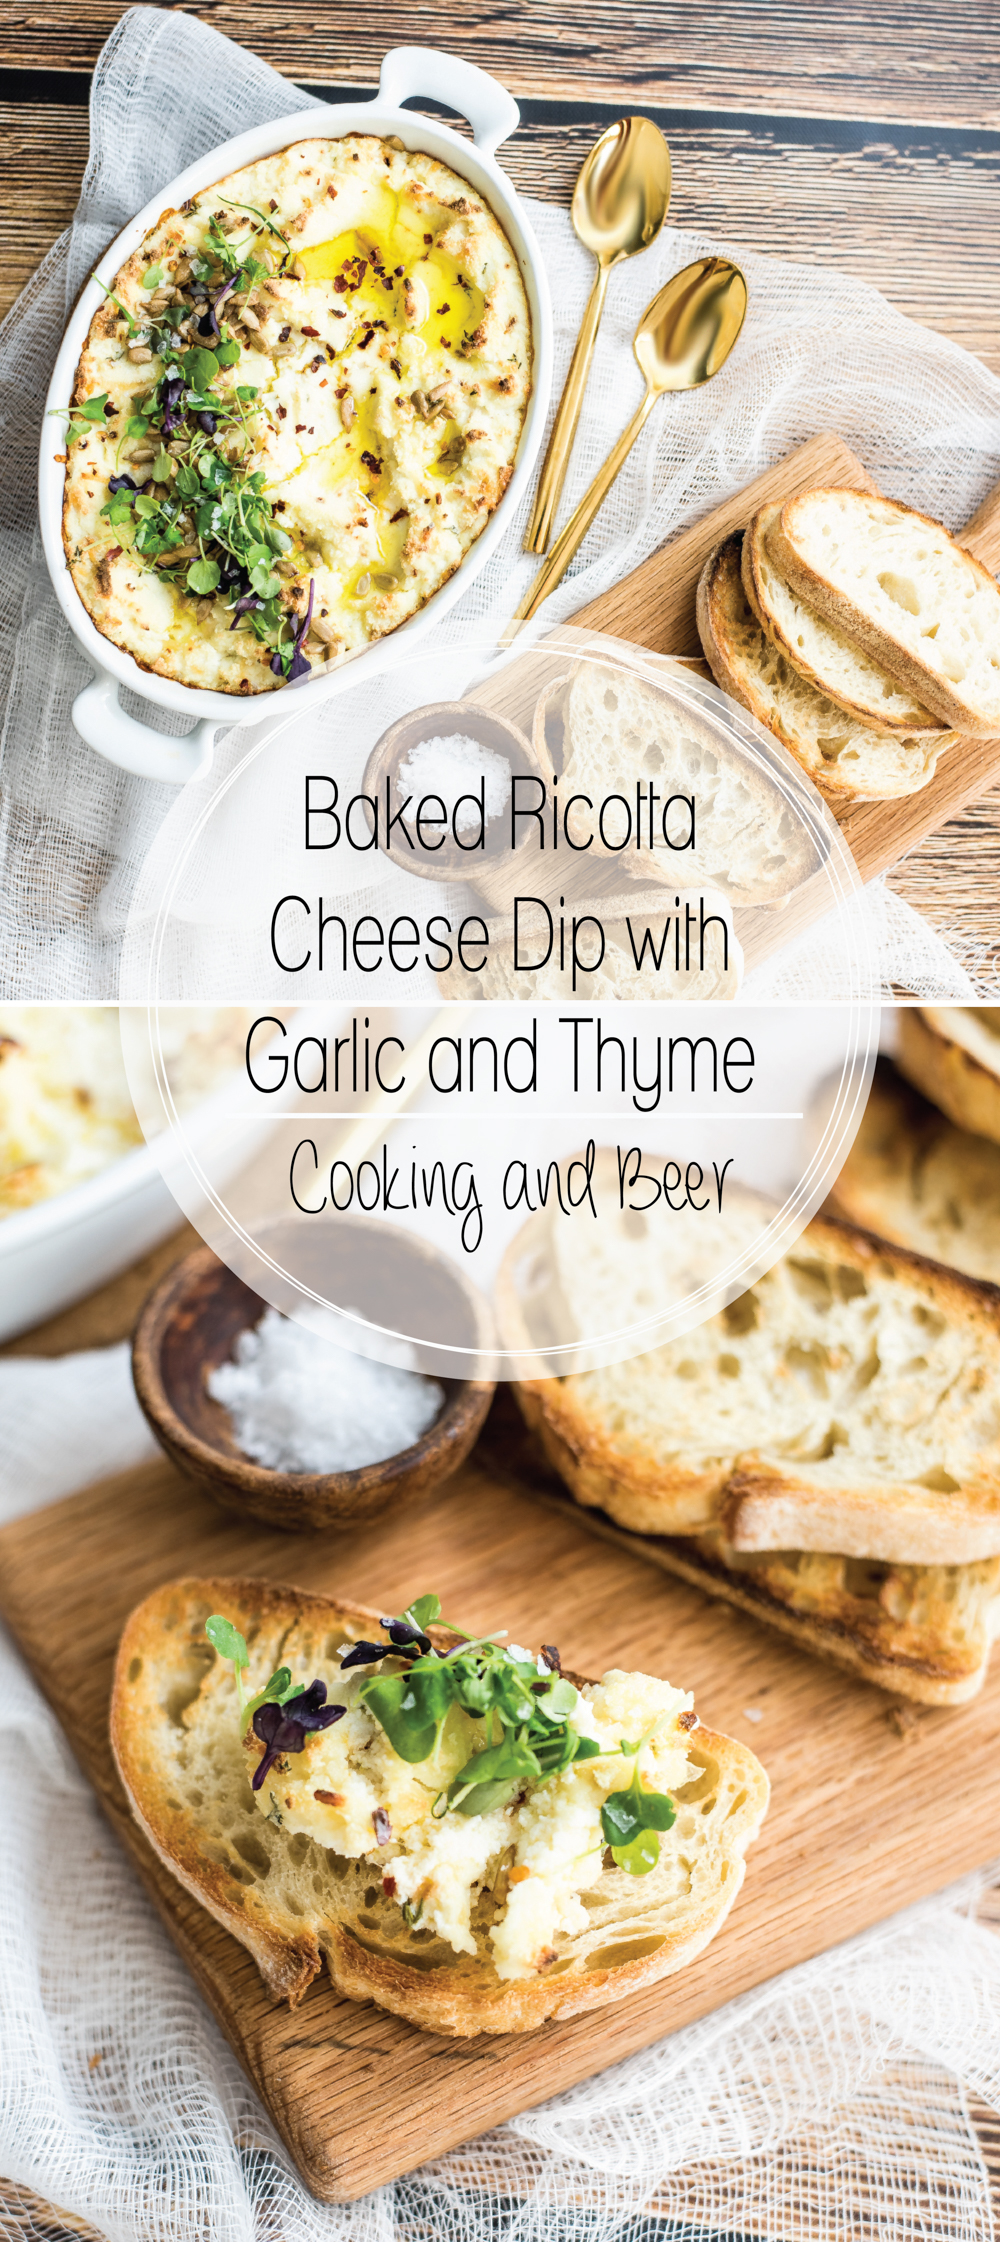 Baked ricotta cheese dip with garlic and thyme is the perfect simple and quick appetizer recipe. It's great served at a dinner party or a game day shindig!